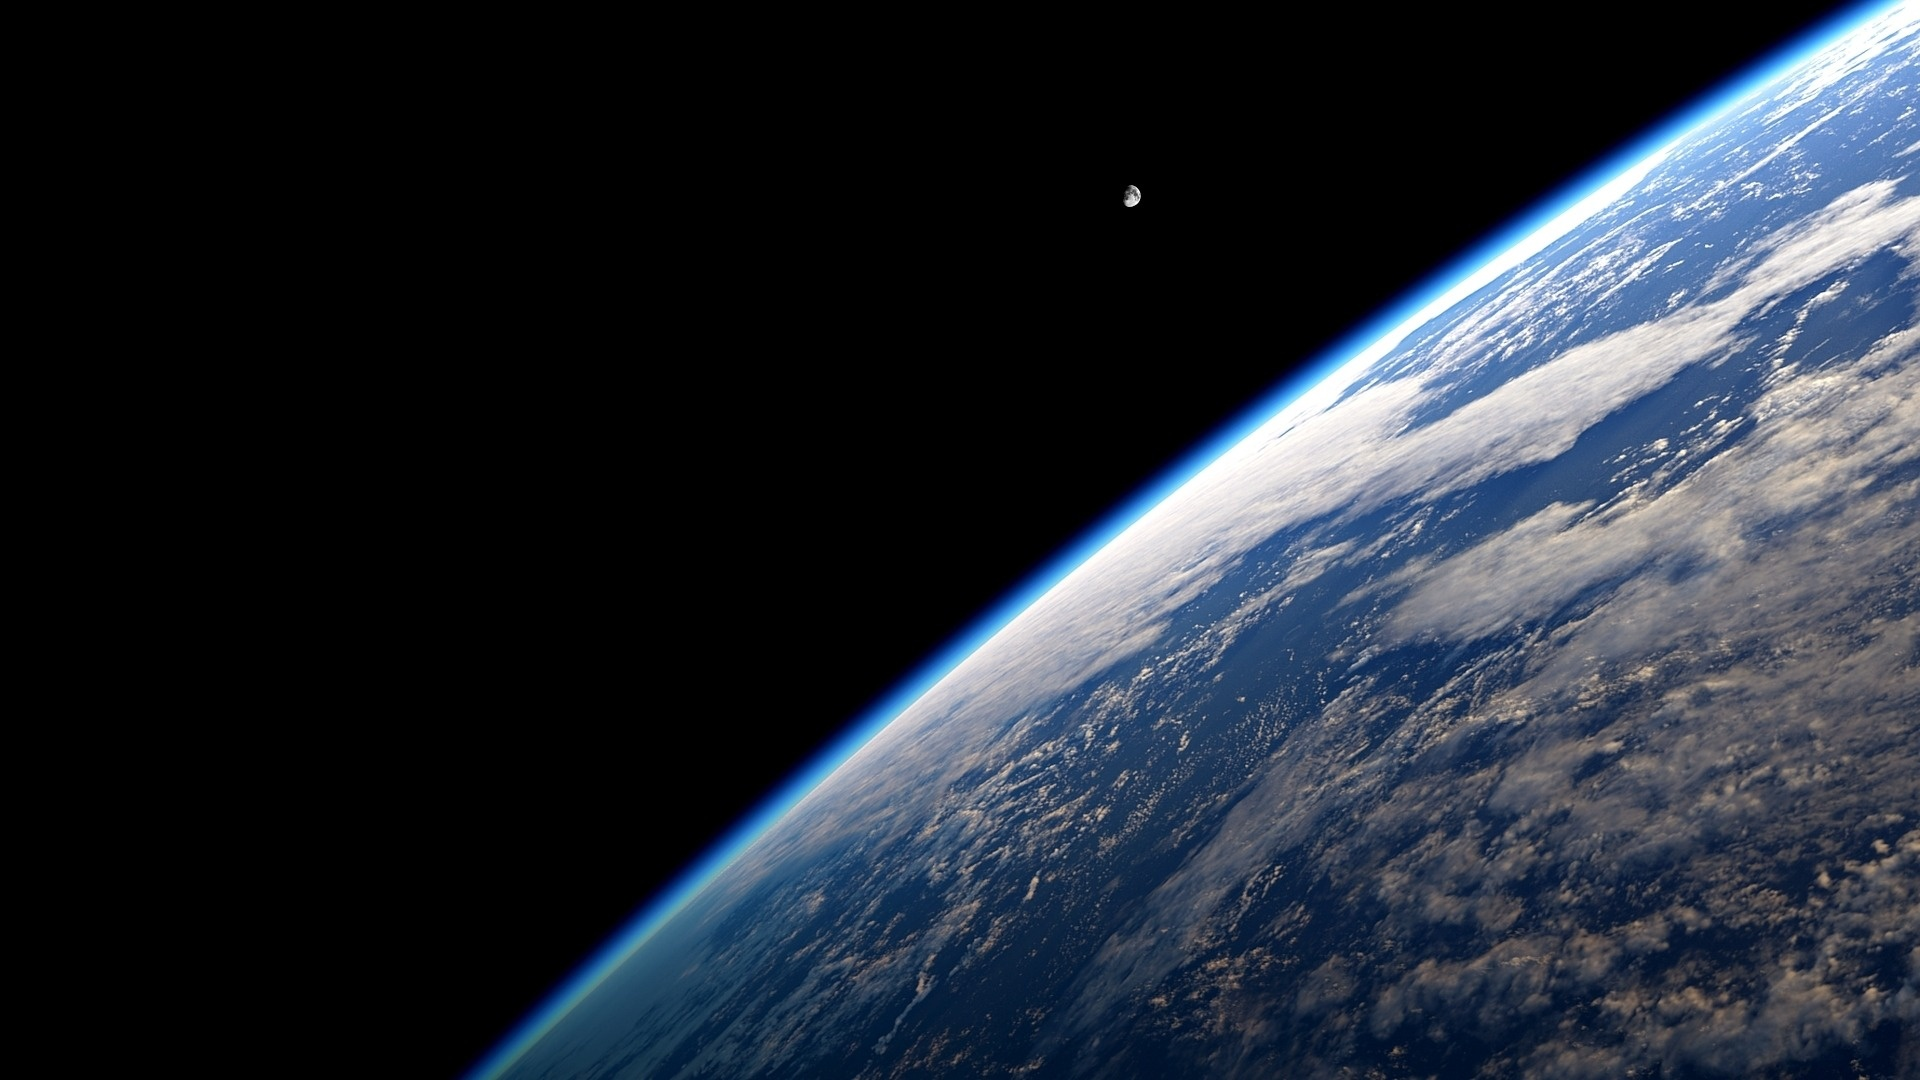 Earth Space Background | wallpaper, wallpaper hd, background desktop